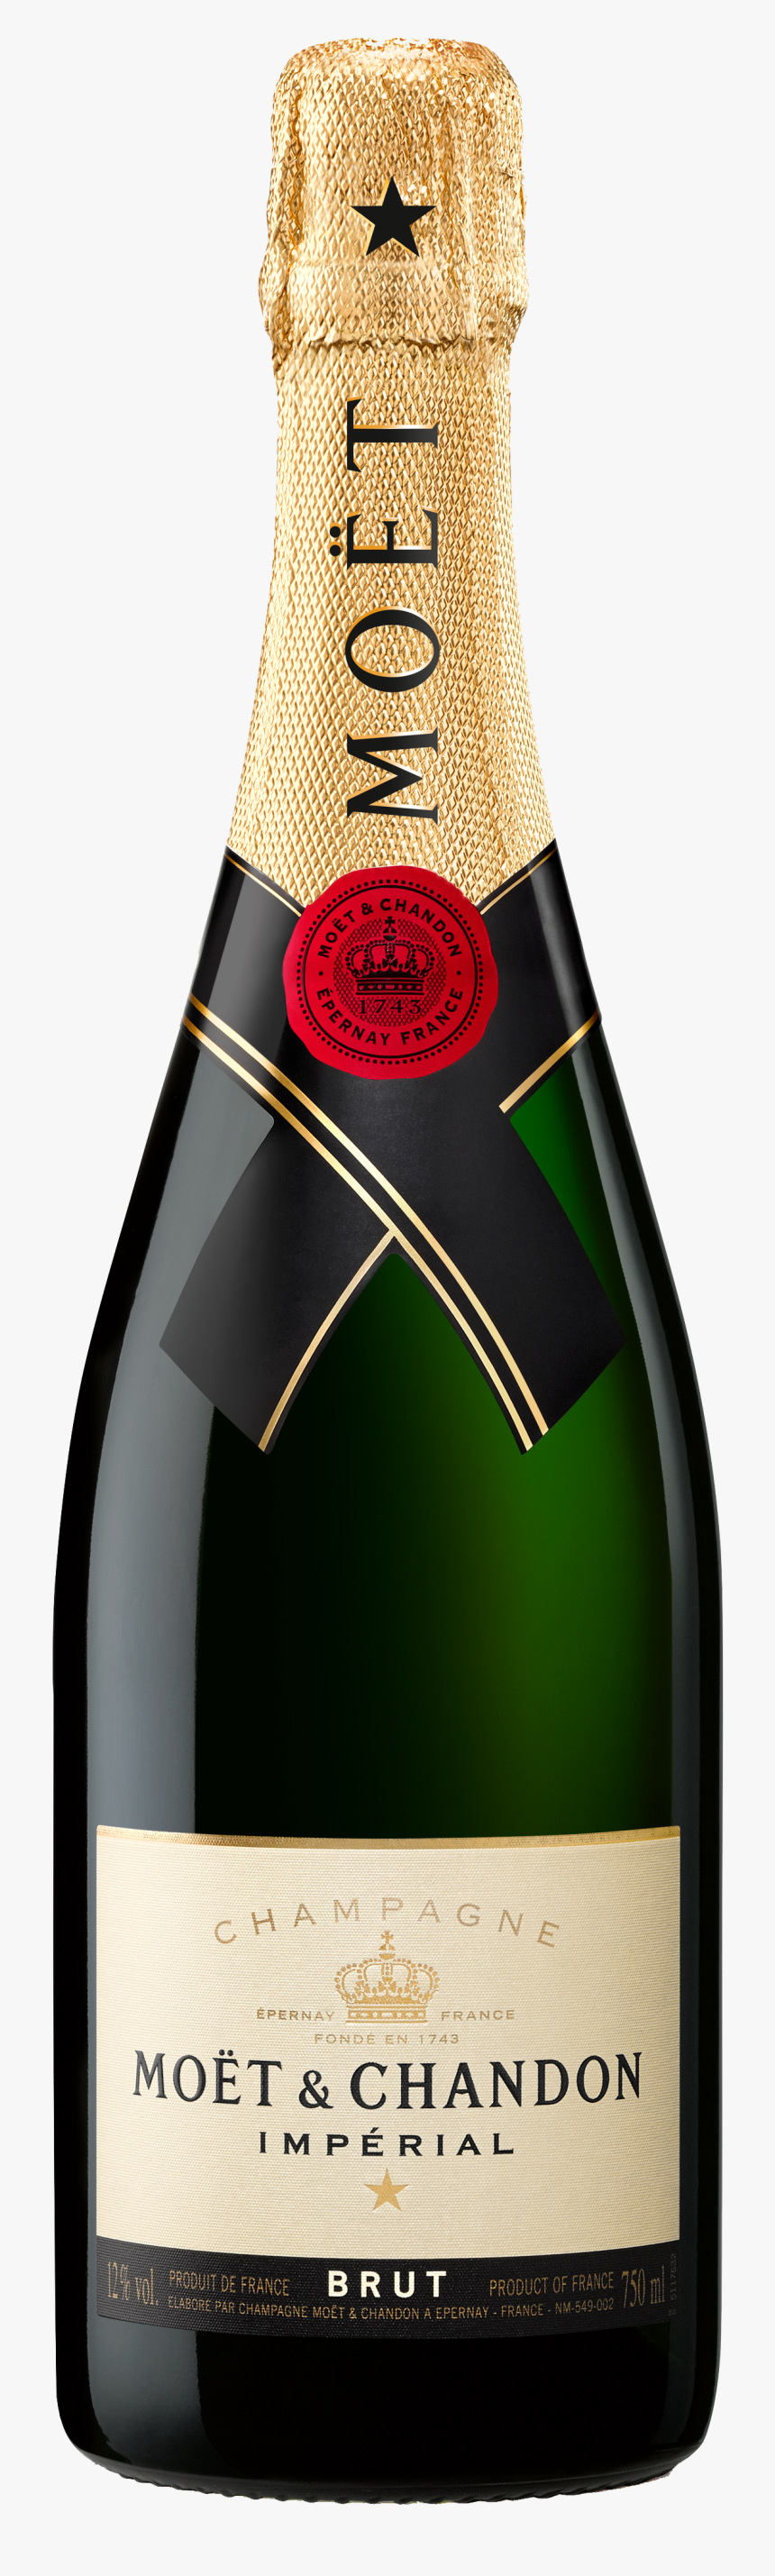 Moet & Chandon Imperial 750ml, HD Png Download, Free Download